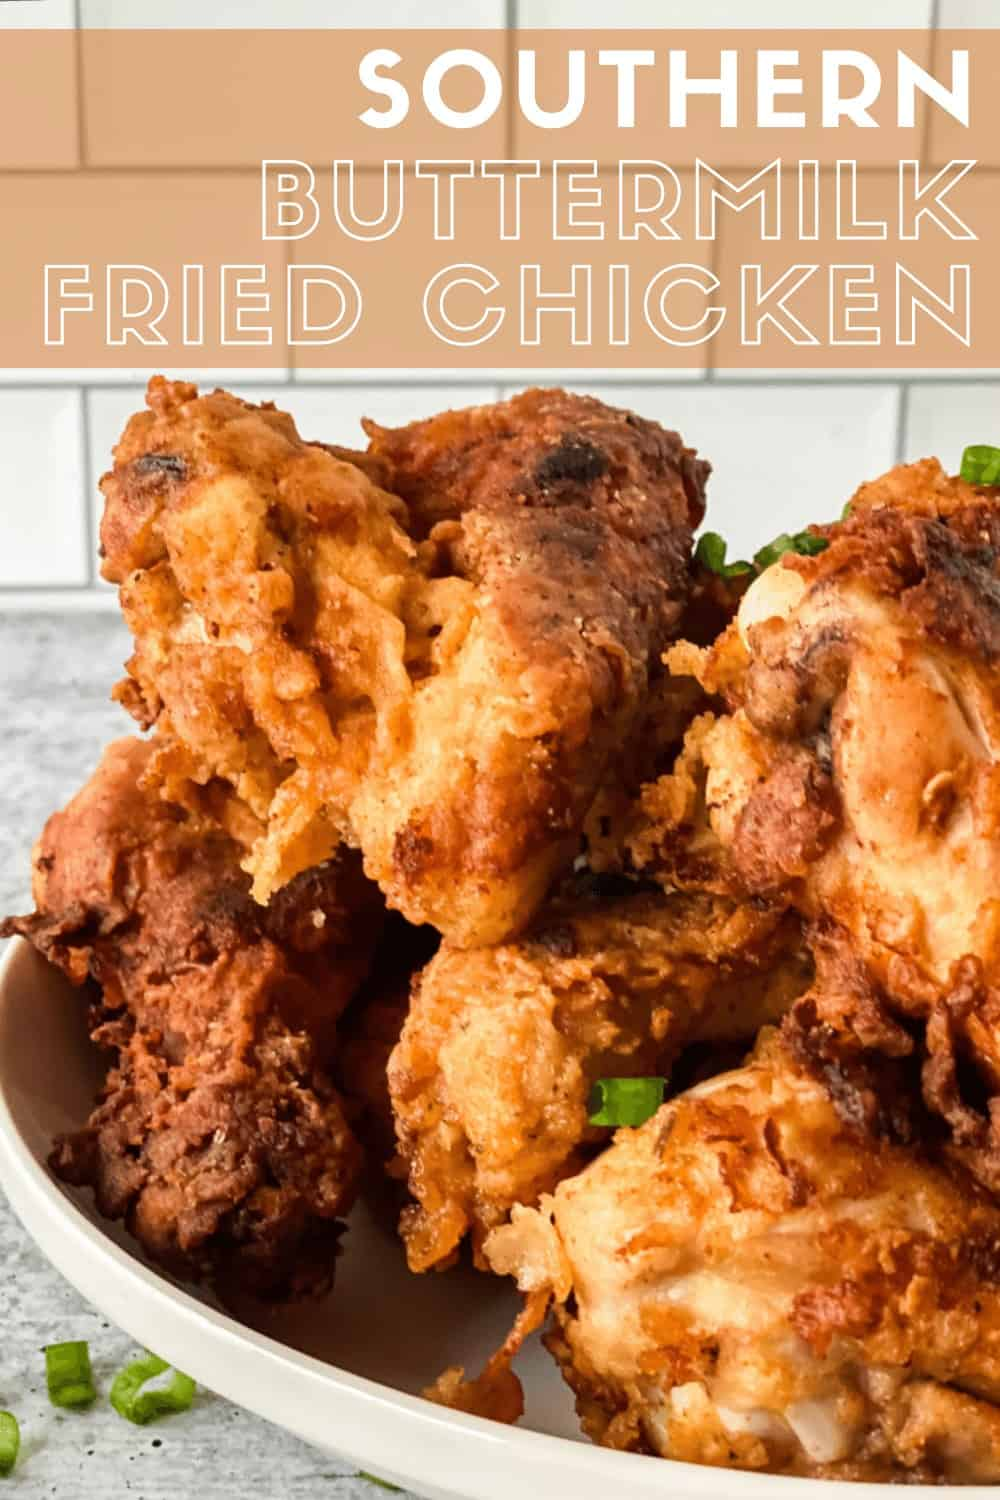 Southern fried chicken in a white bowl